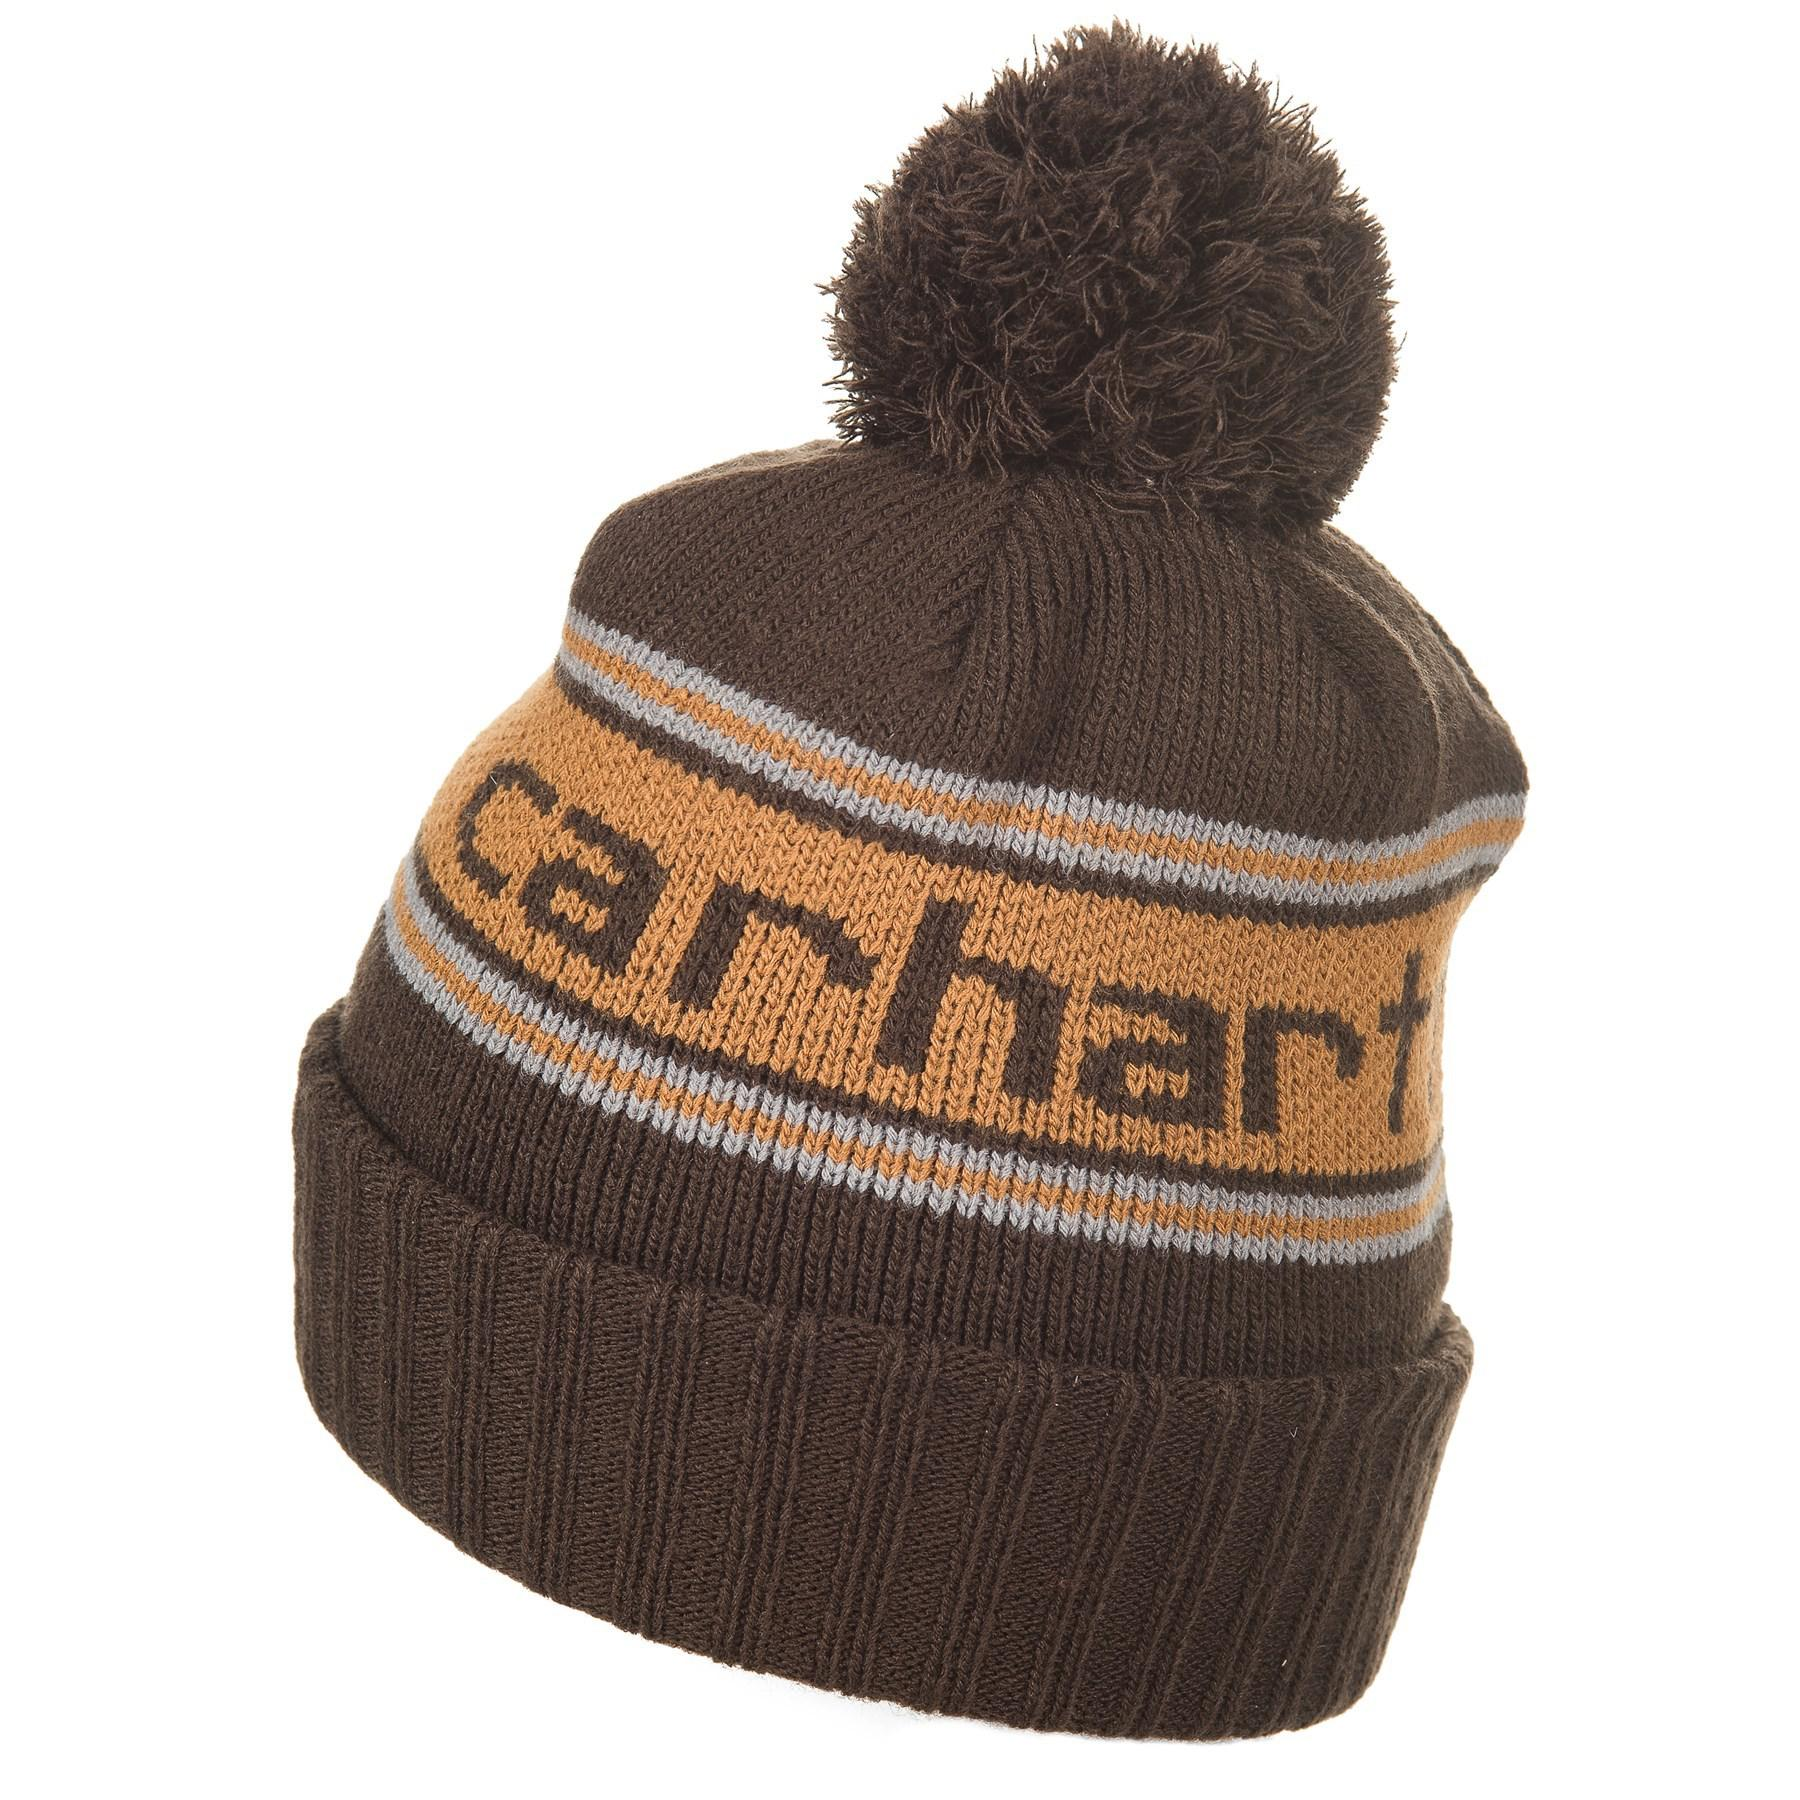 Lyst - Carhartt Rexburg Hat (for Men) in Brown for Men 0020c51bf42